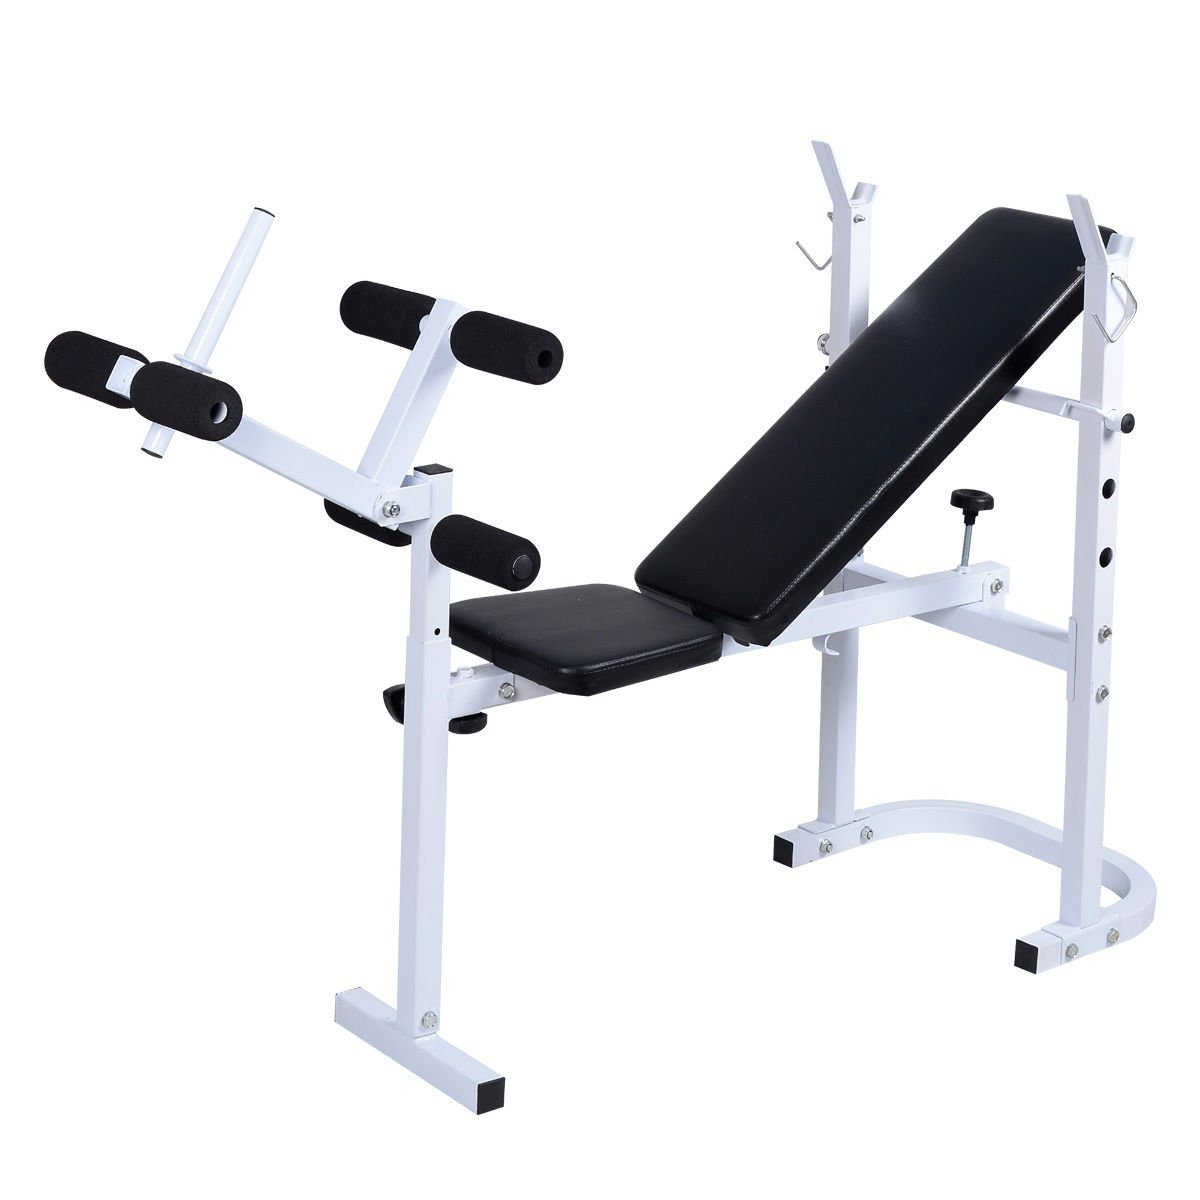 HPD Body Solid Olympic Folding Weight Bench Incline Lift Workout Press Home Gym